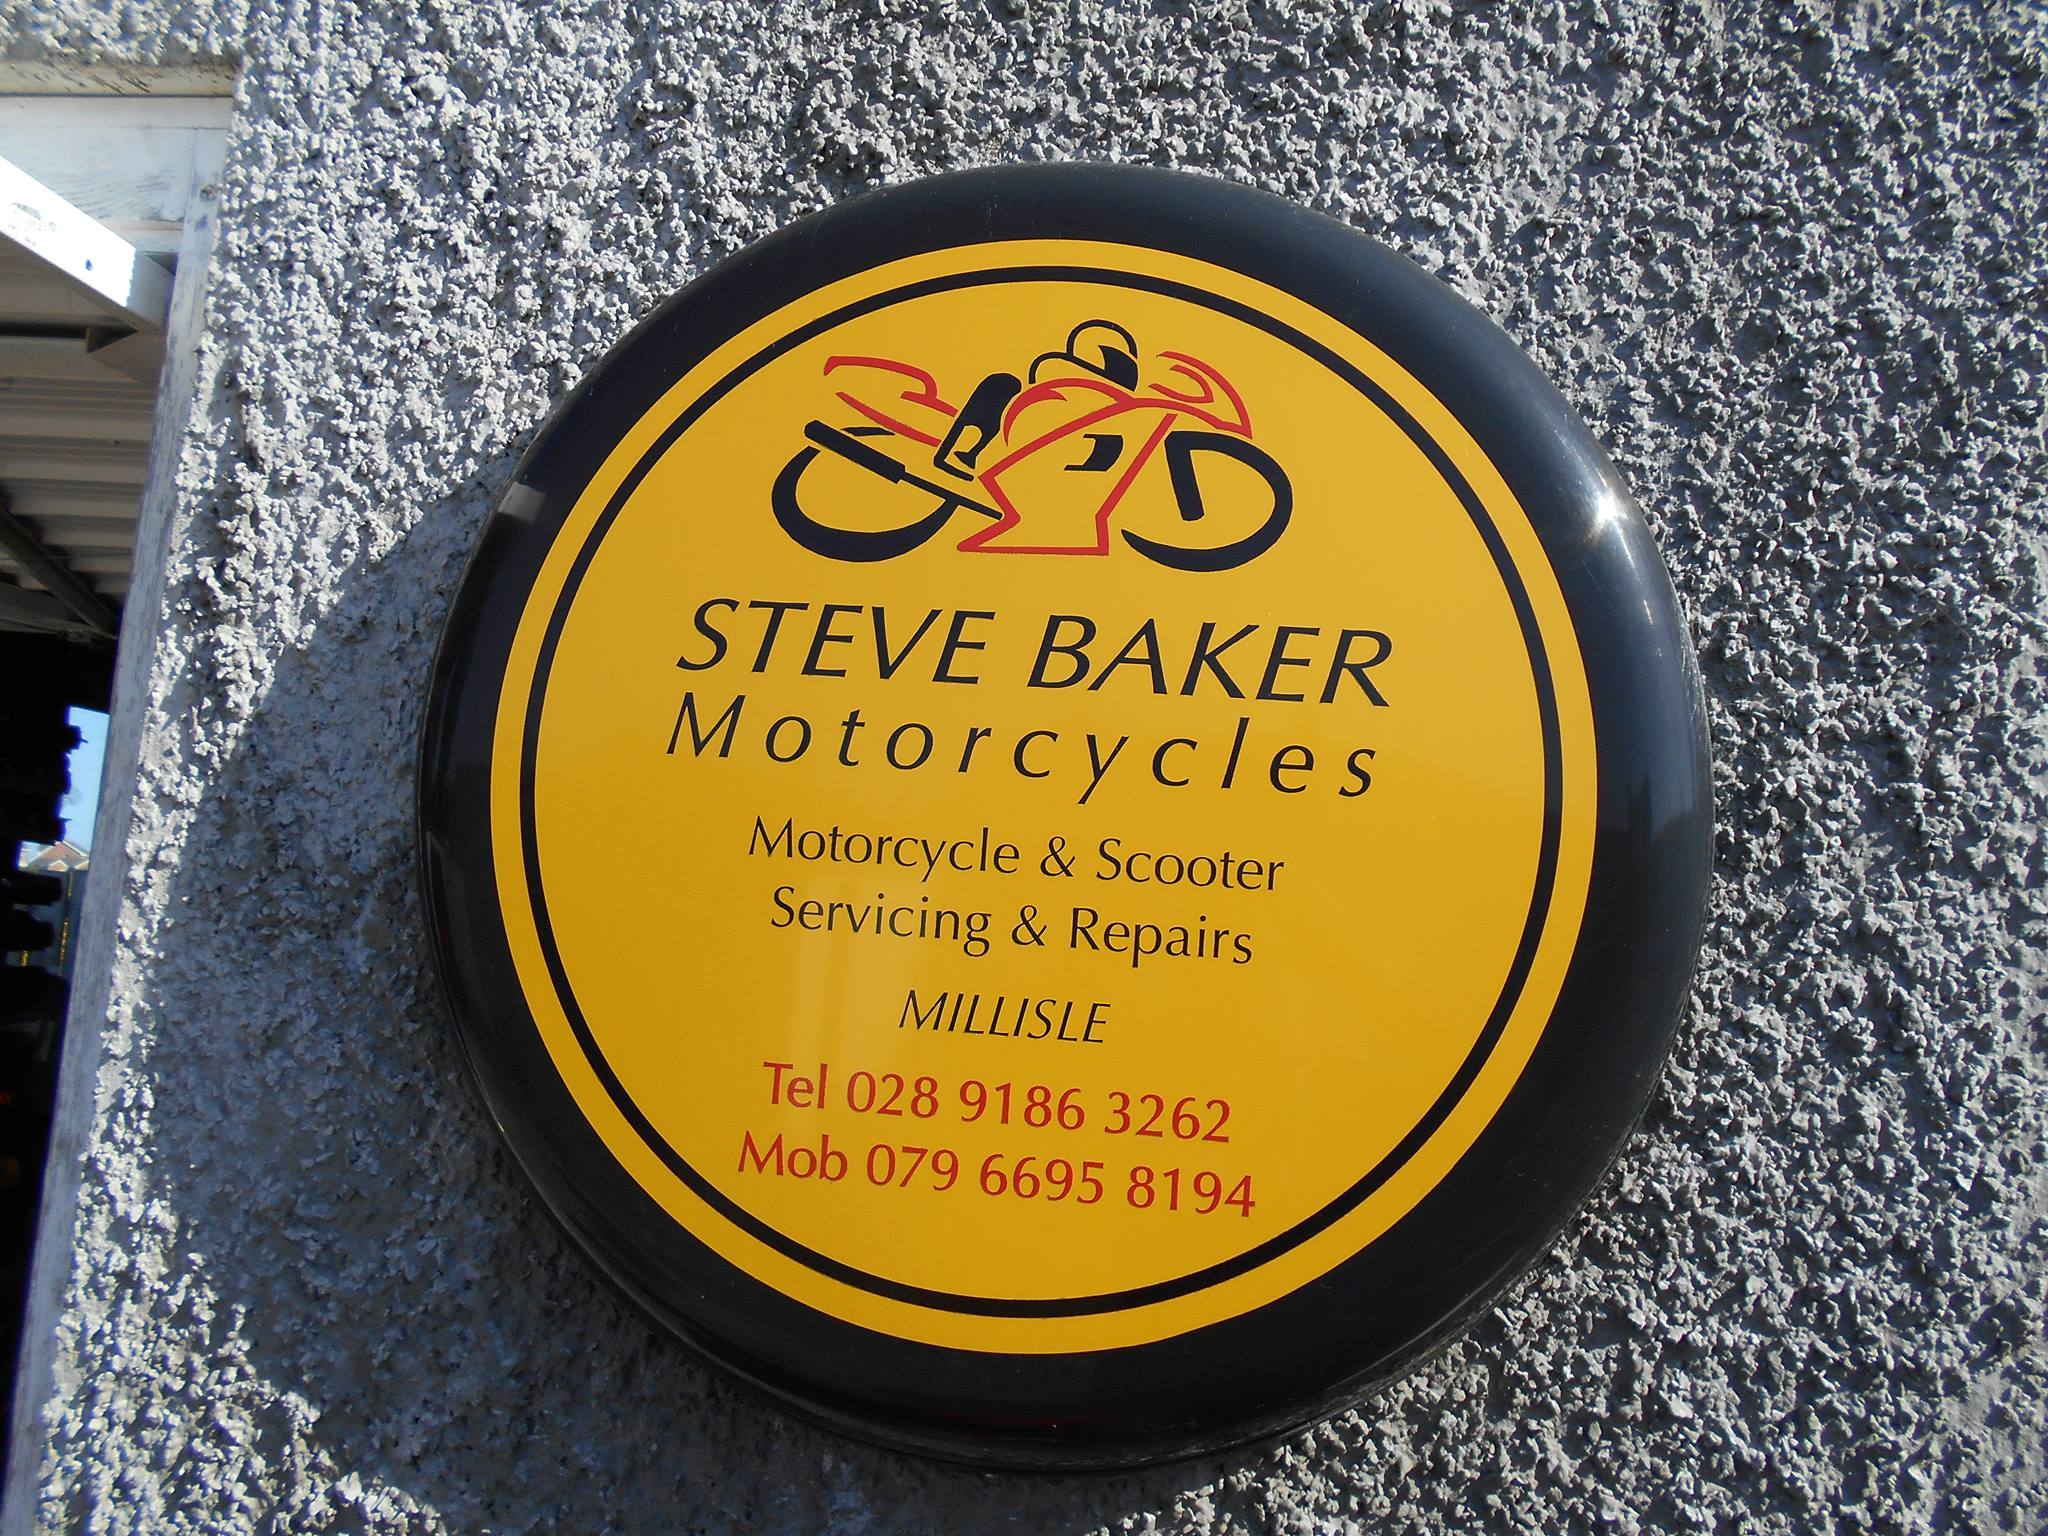 Steve Baker On 2 Wheels